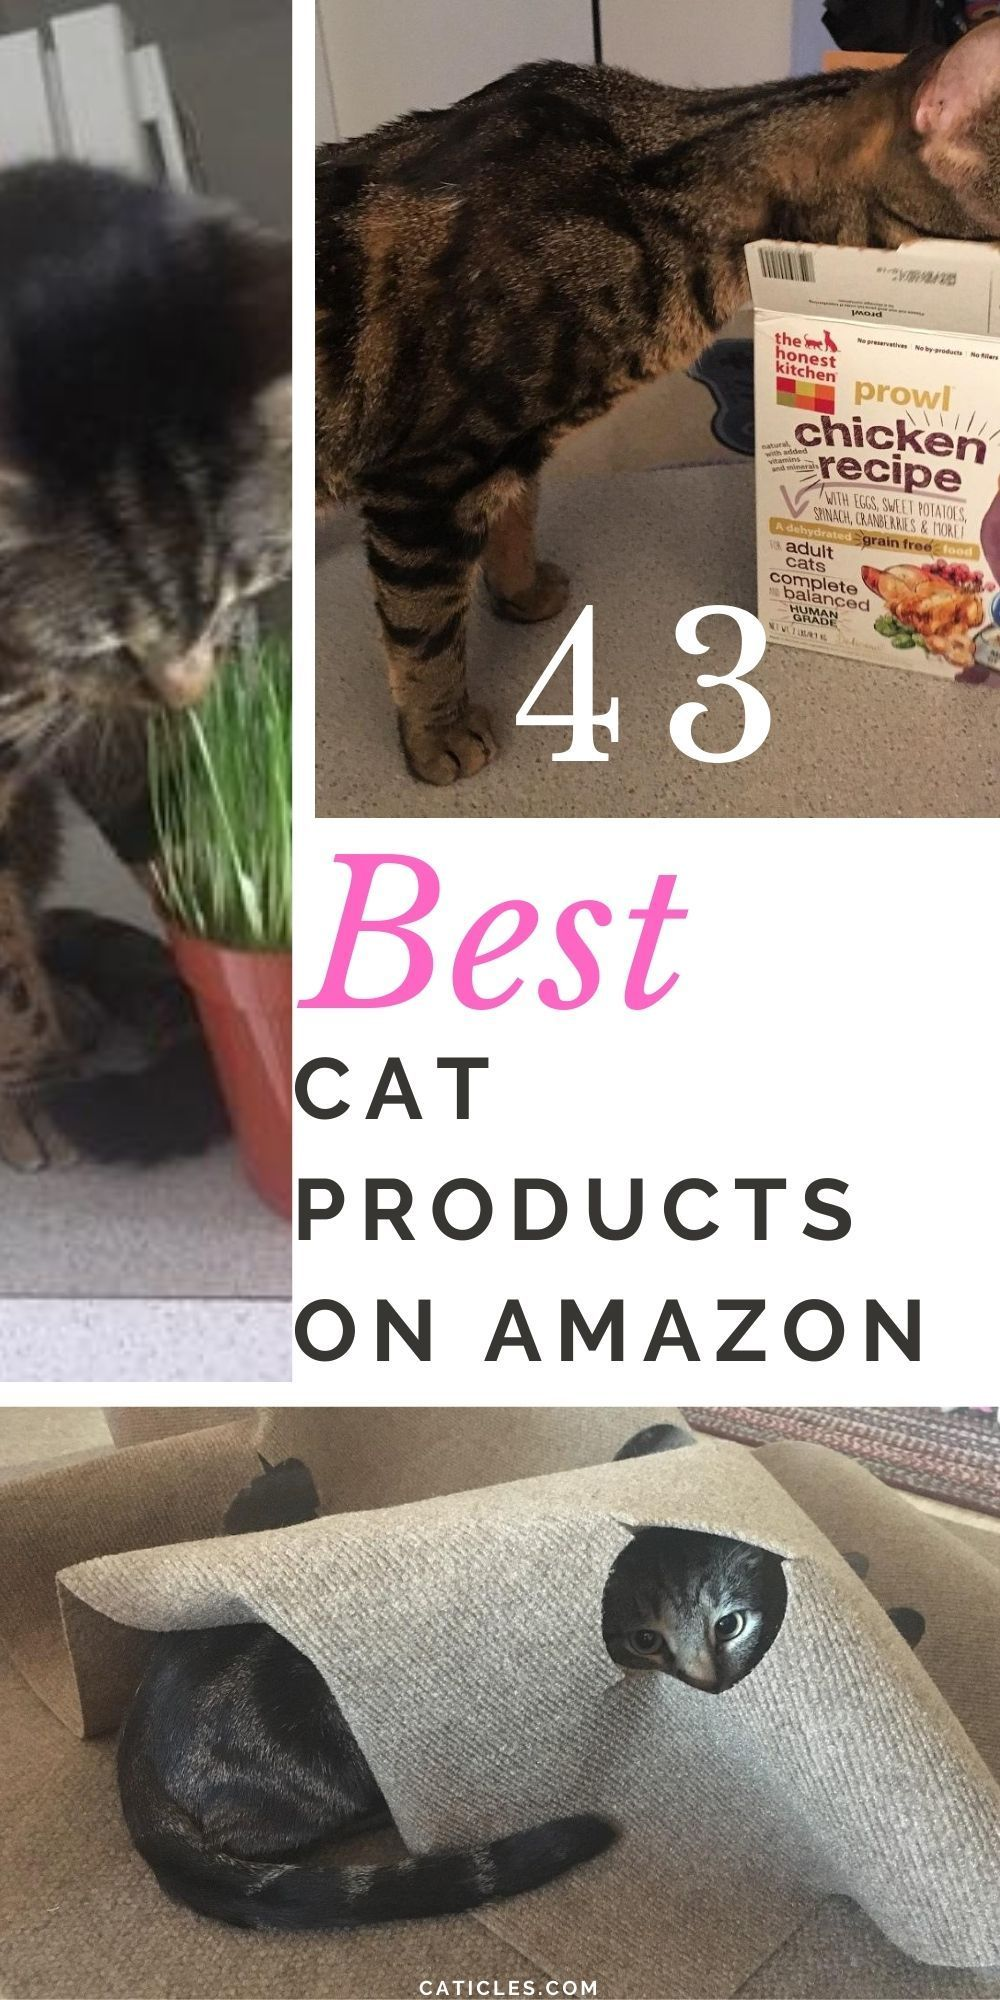 43 Best Cat Products On Amazon 2020 Must Have Guide In 2020 Cool Cats Kitten Care Pet Grooming